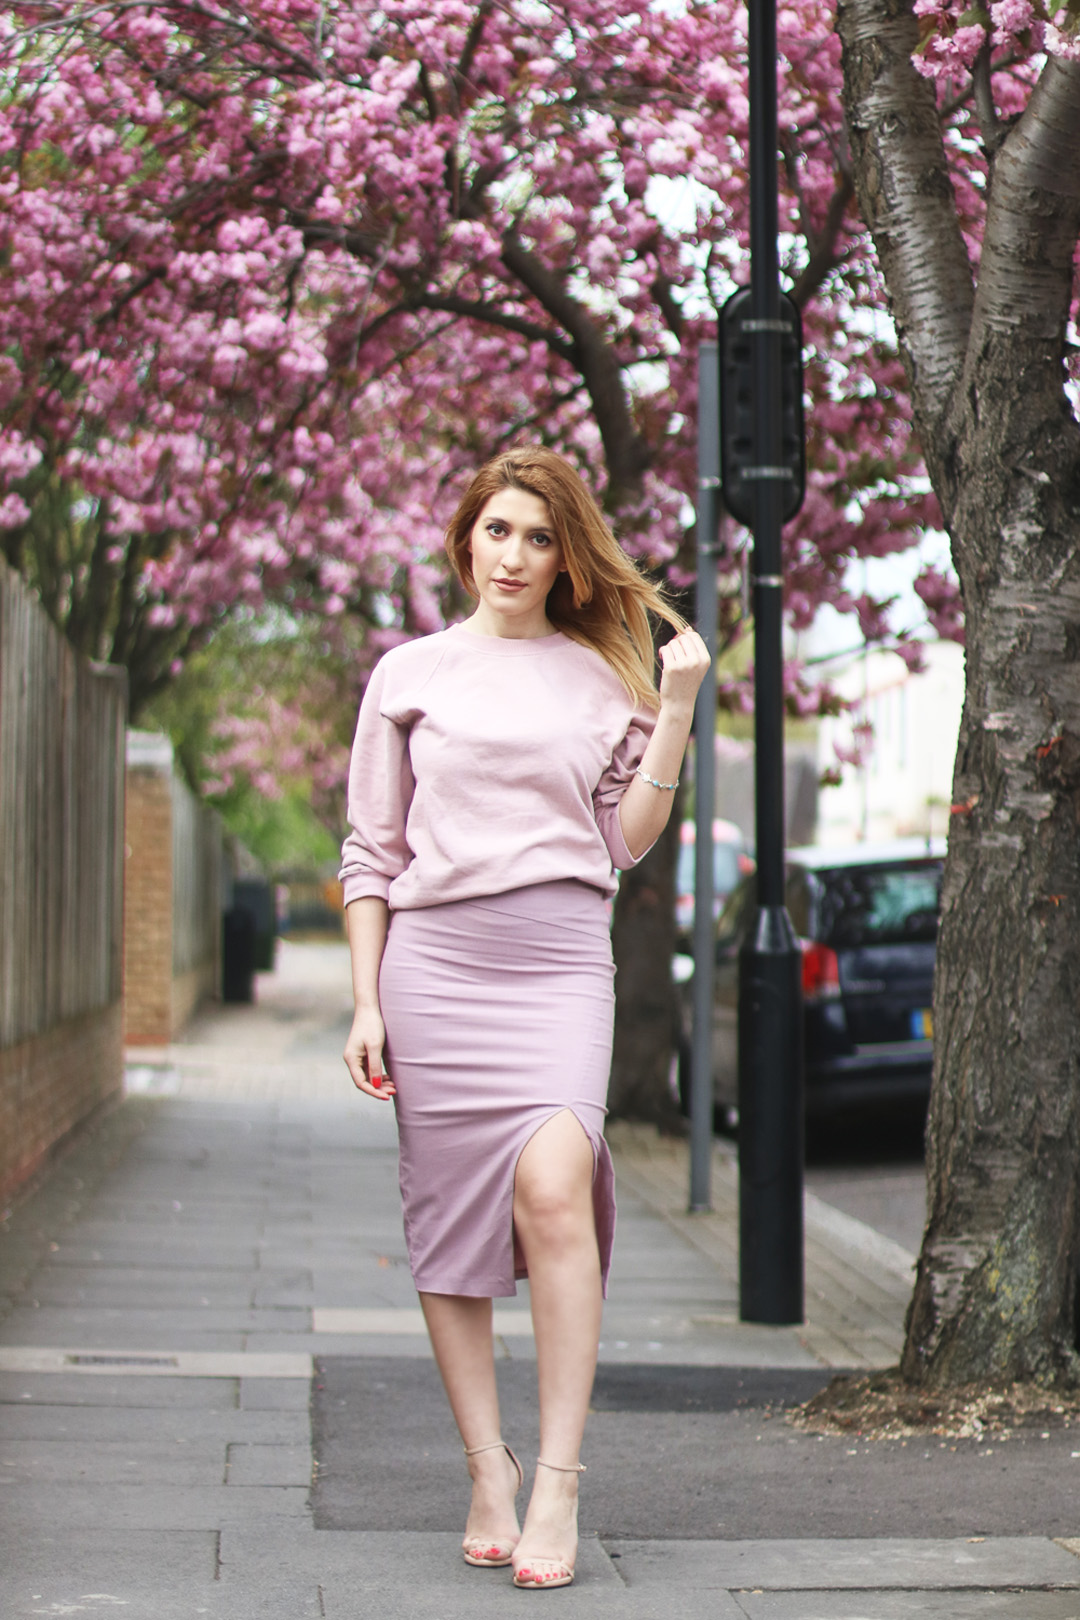 Fashion Spring Trend - It's all about Pink